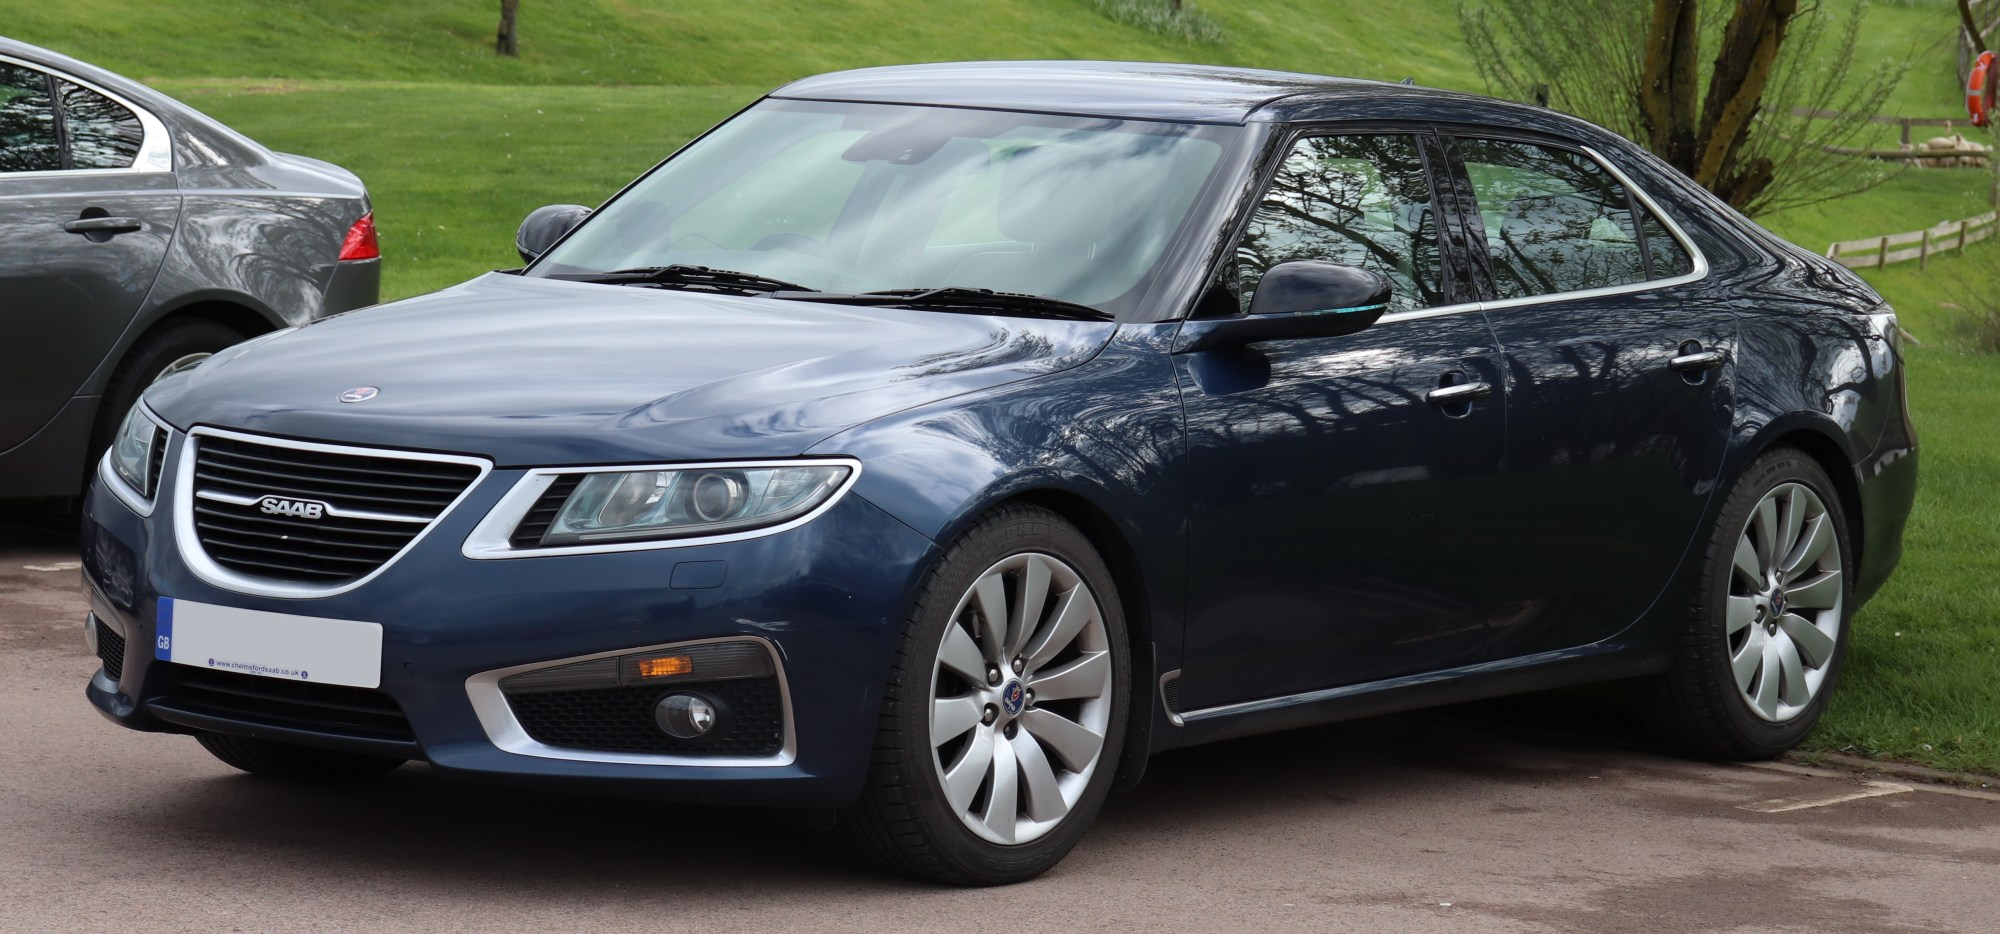 hight resolution of 2004 saab 9 3 owner  manual